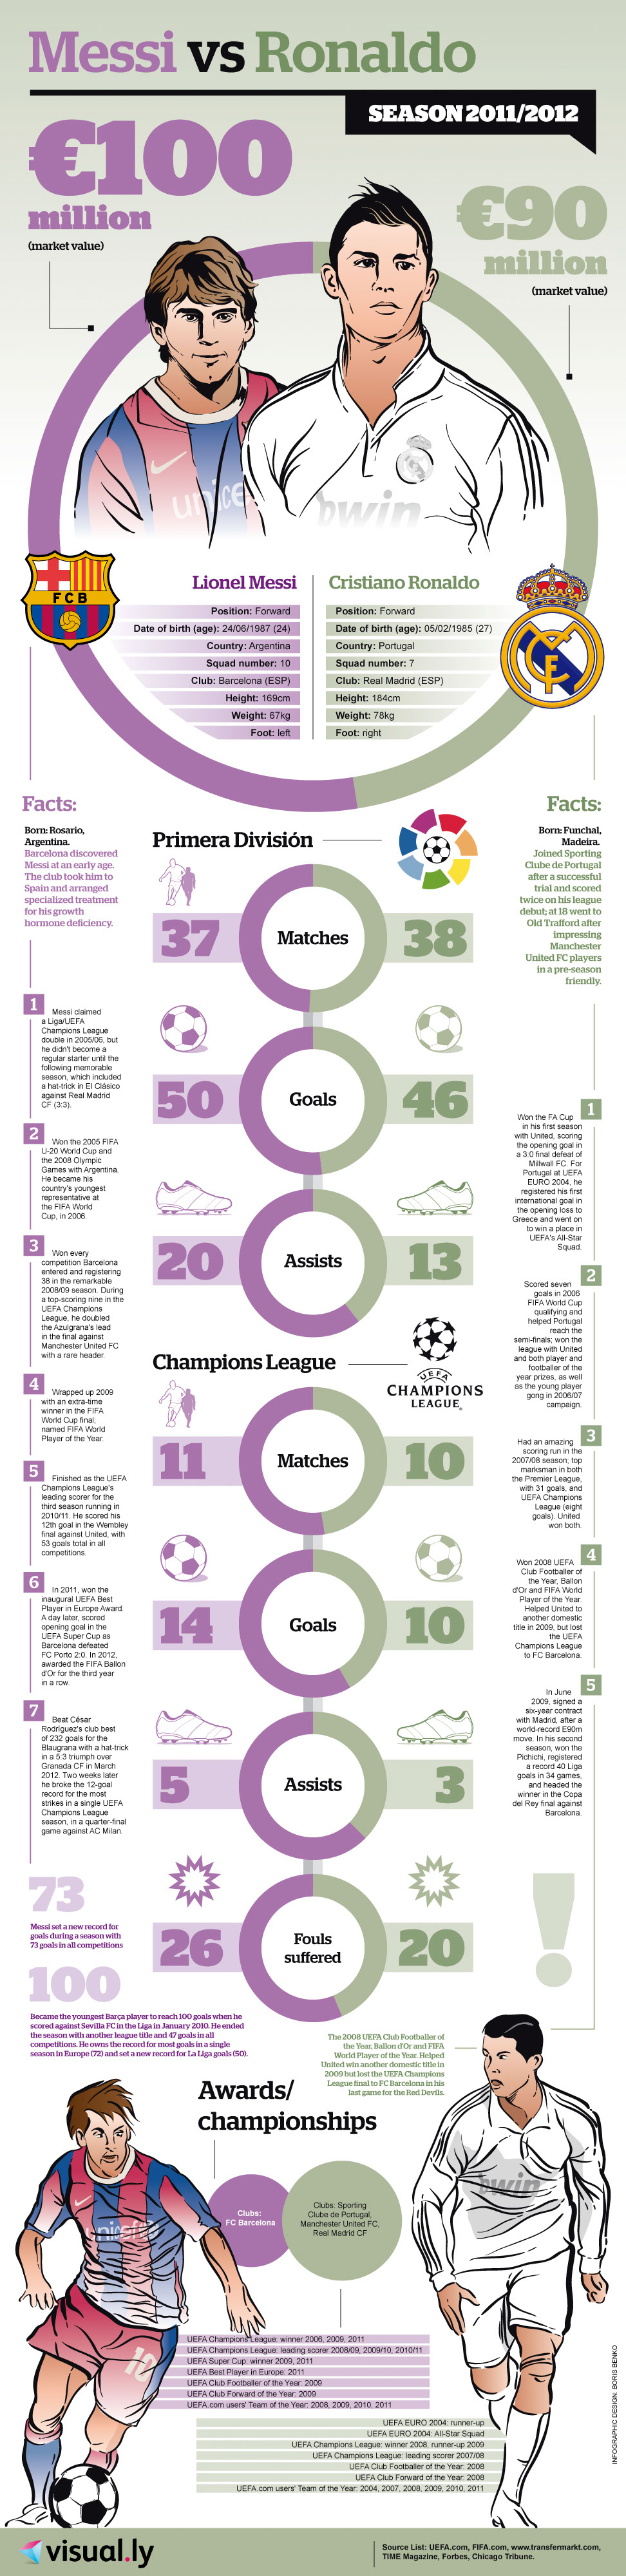 Messi-Vs-Ronaldo-infographic